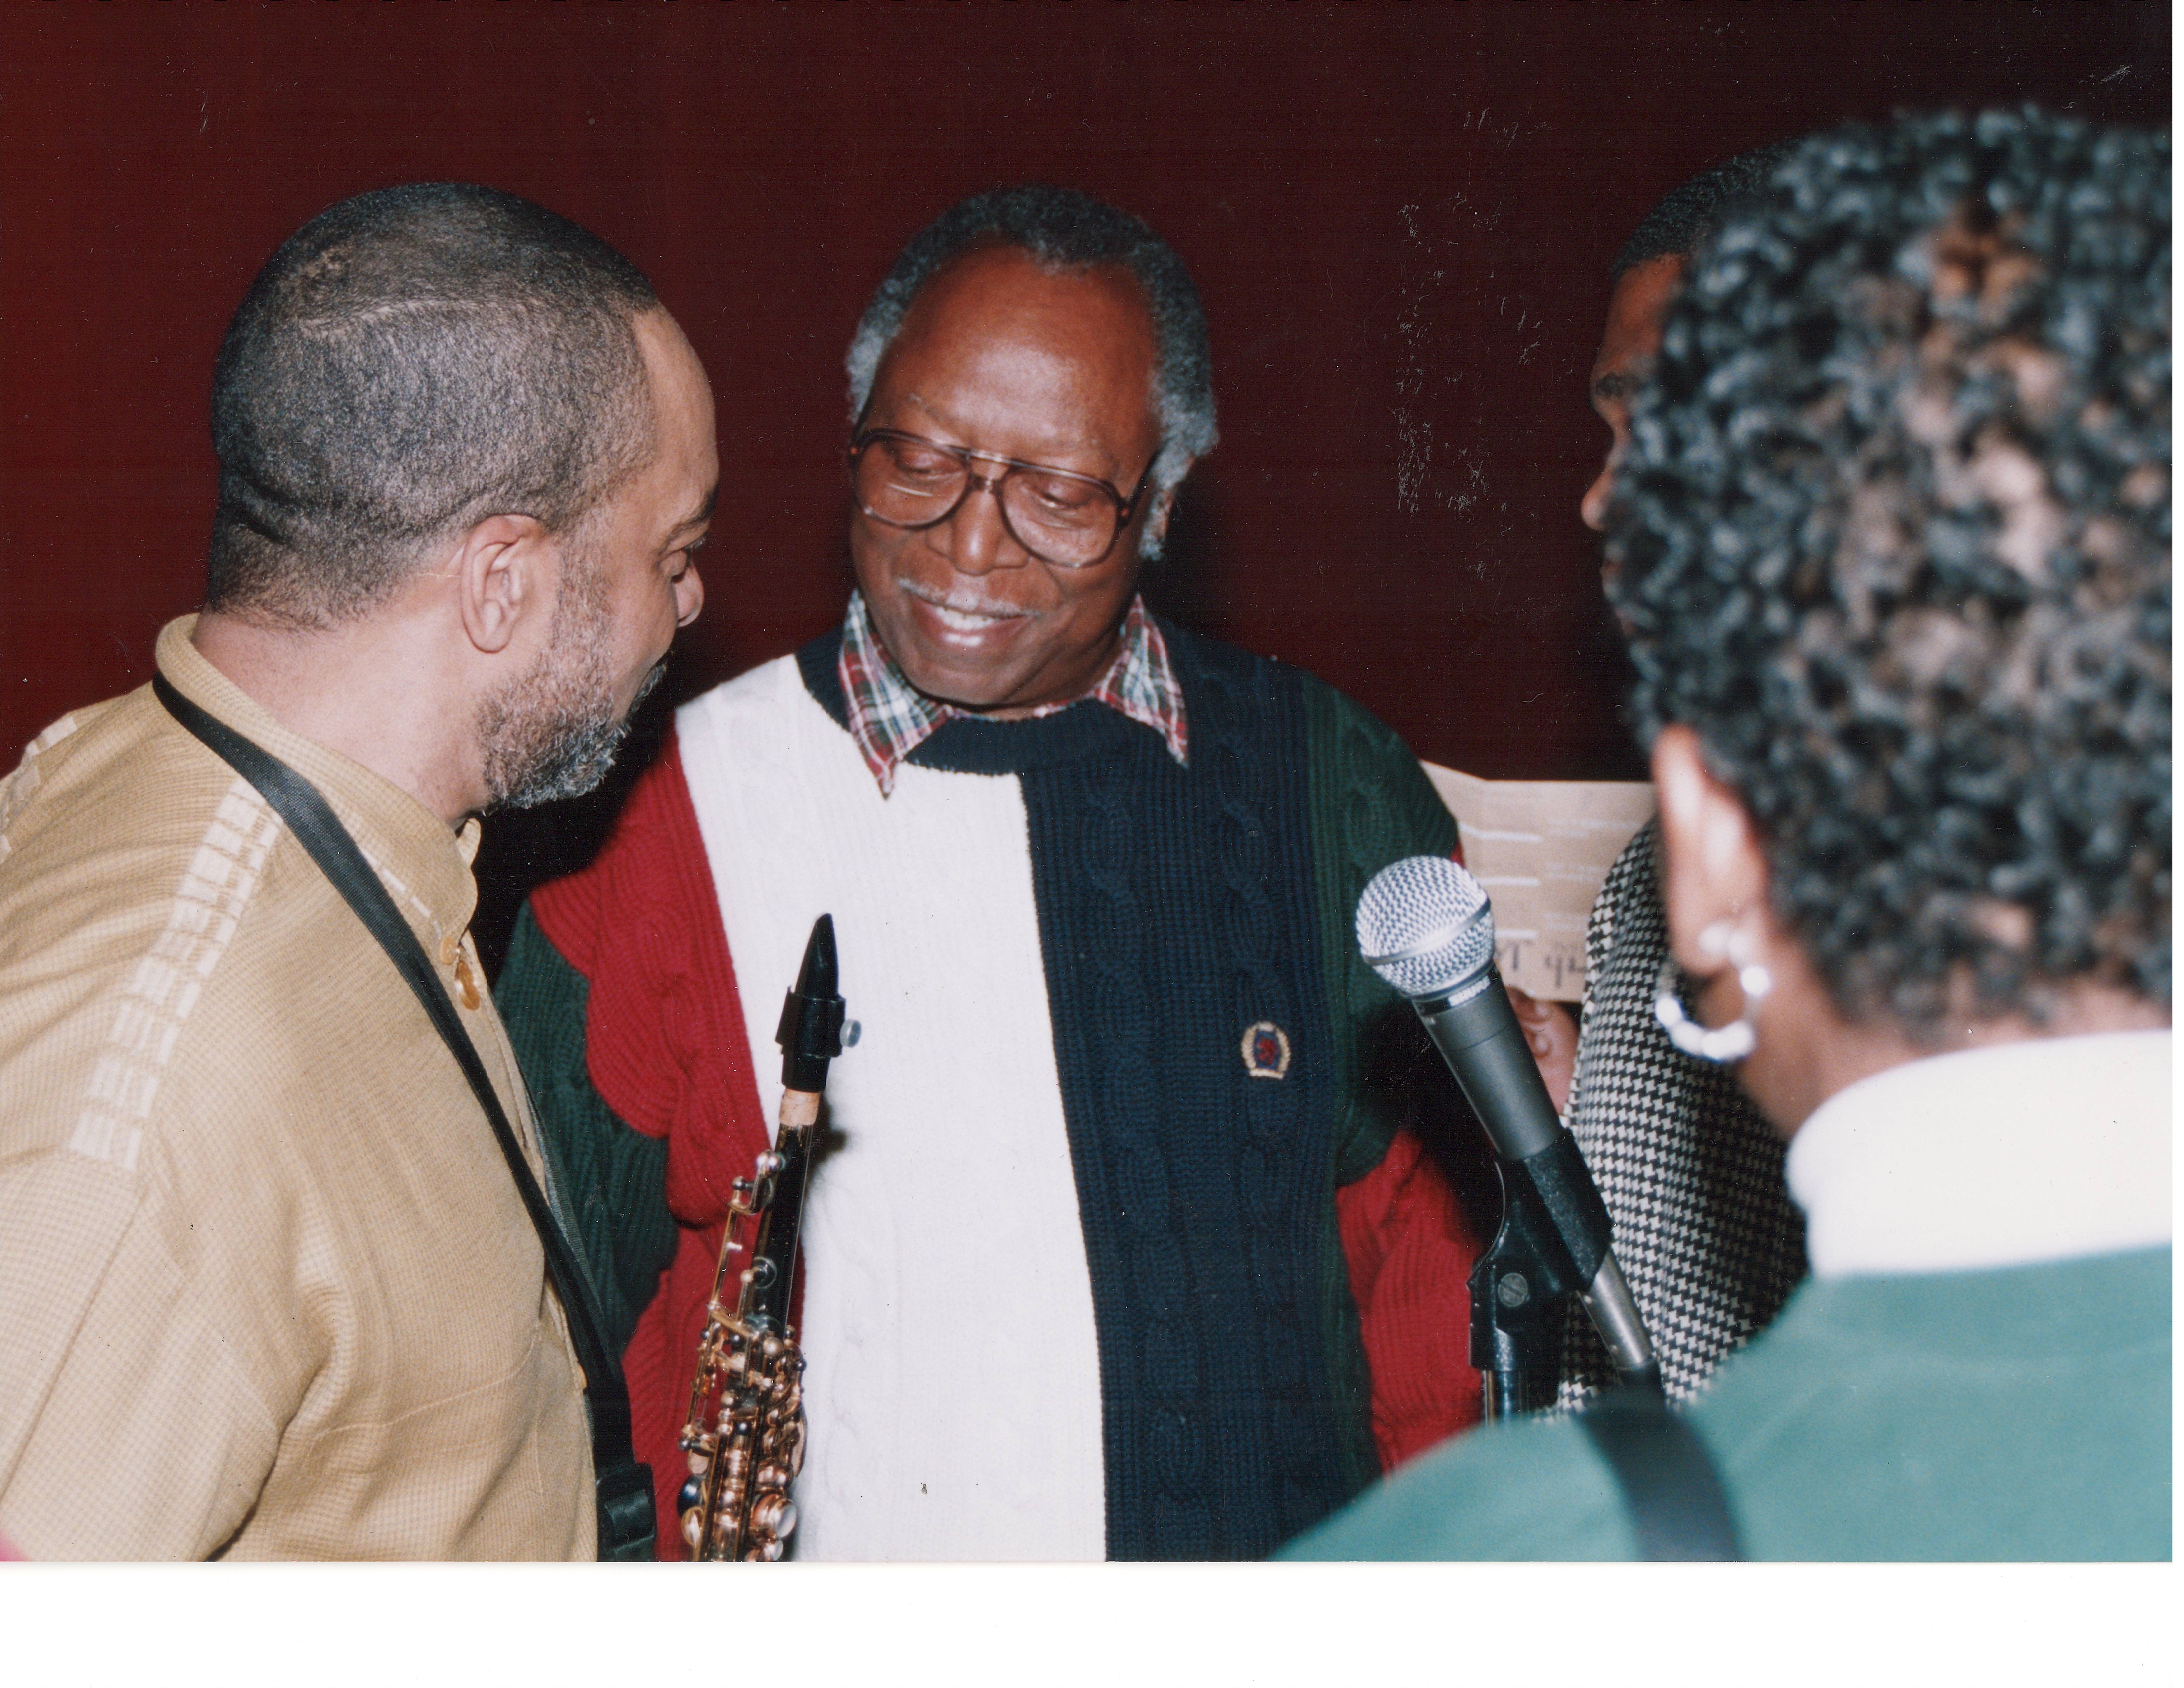 Dr. Lampkins with Mr. Grover Washington, Jr.